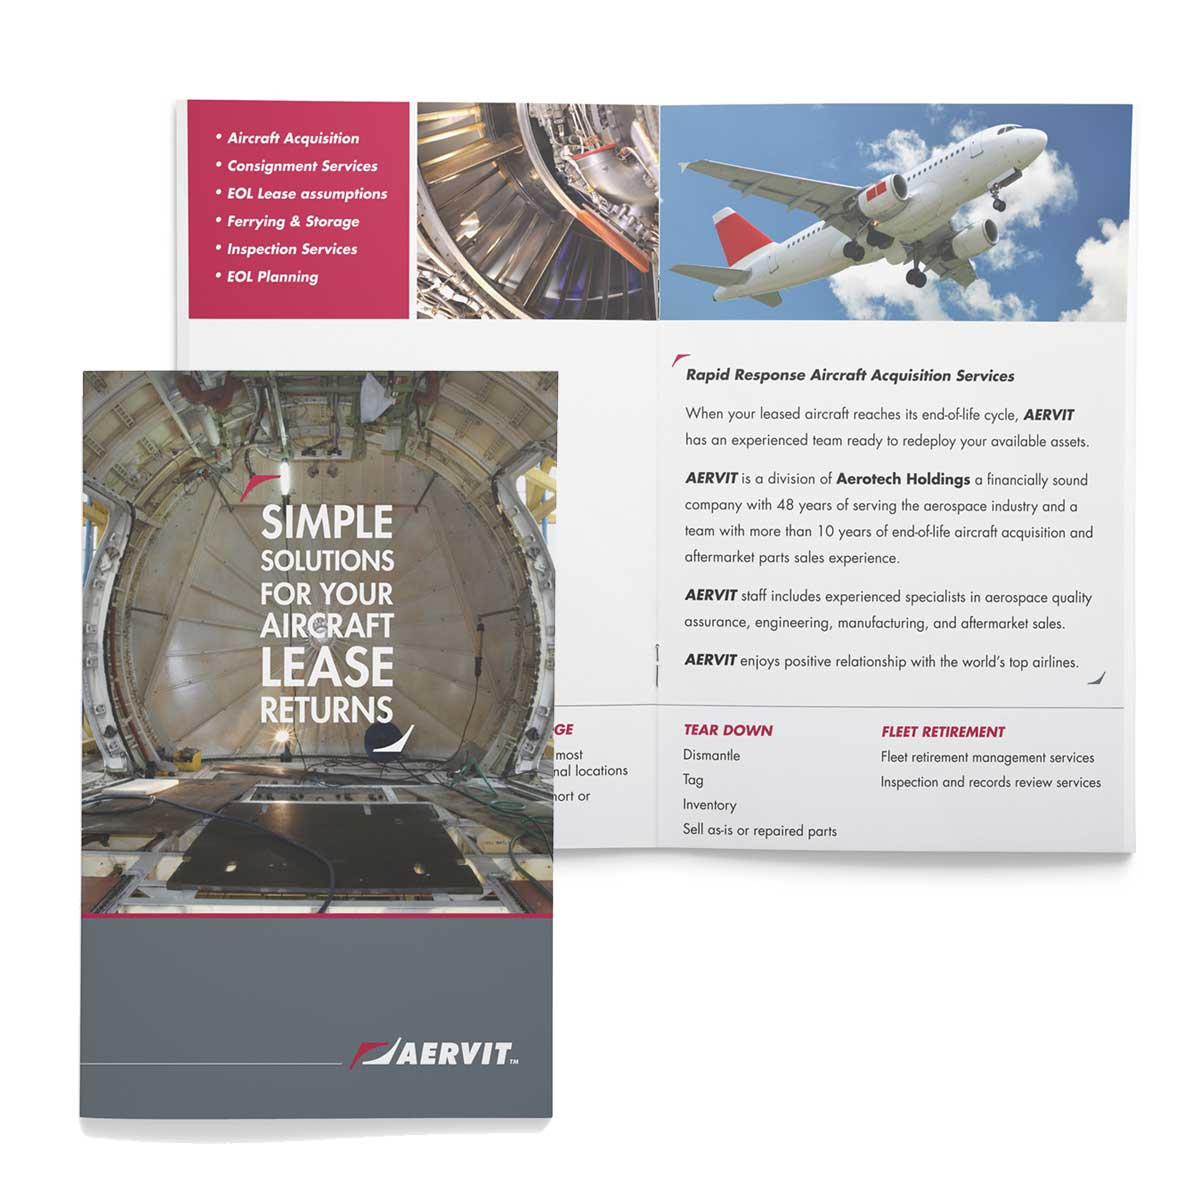 AERVIT marketing materials